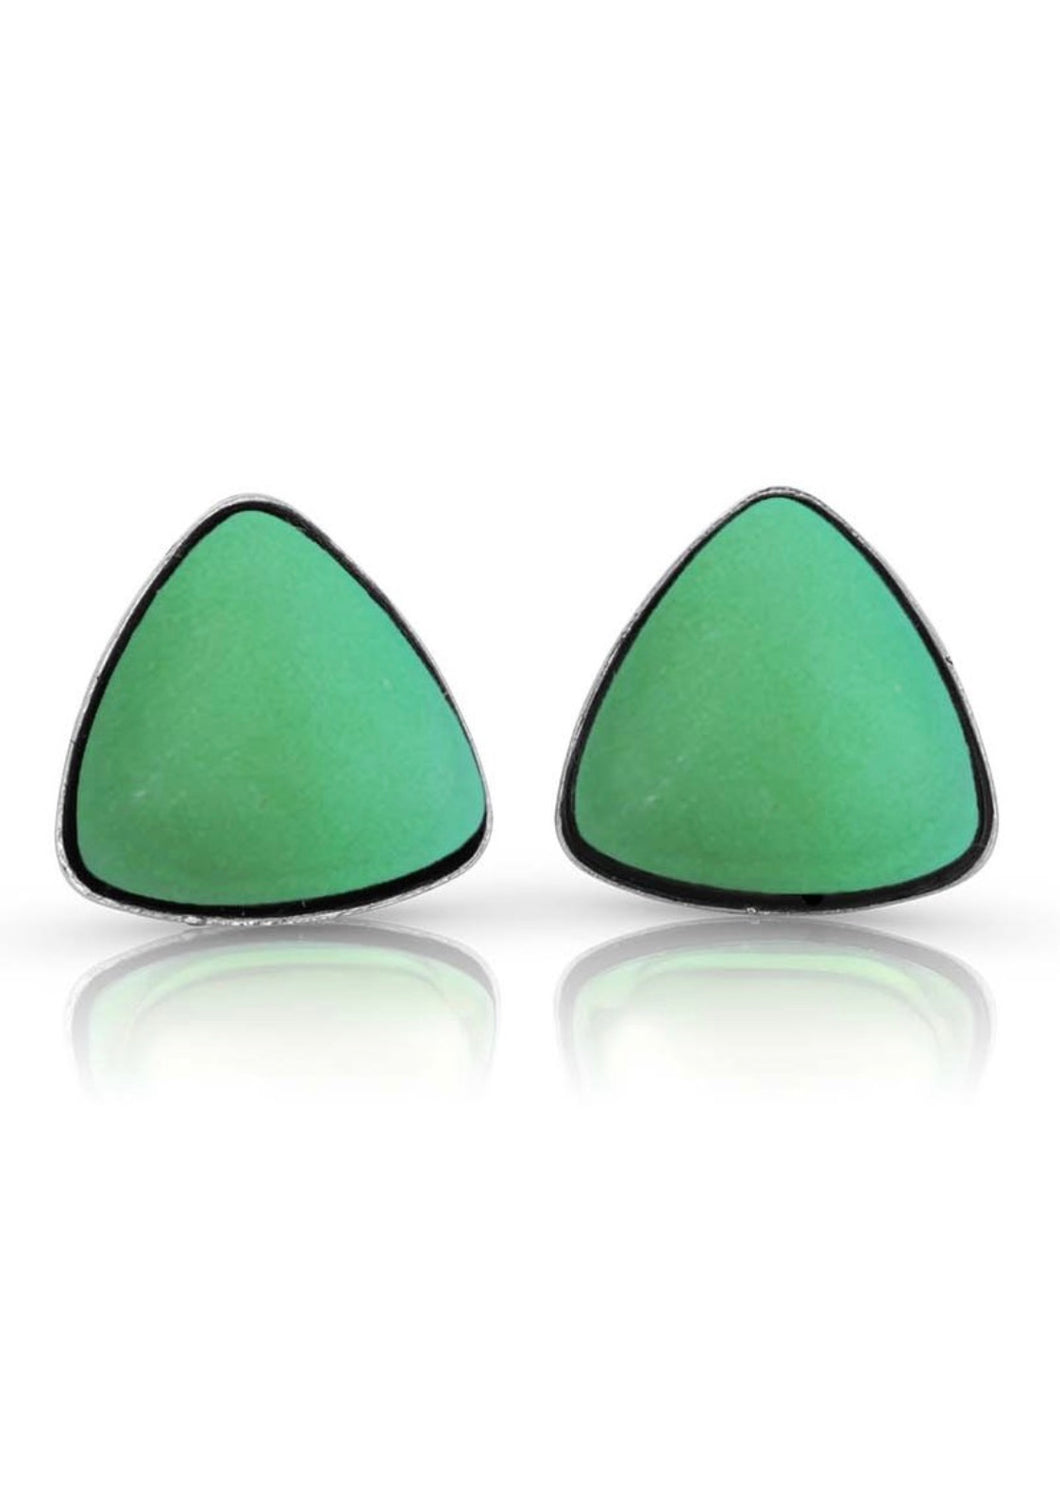 Artisan Made Crystal Triangle Stud Earring - Green